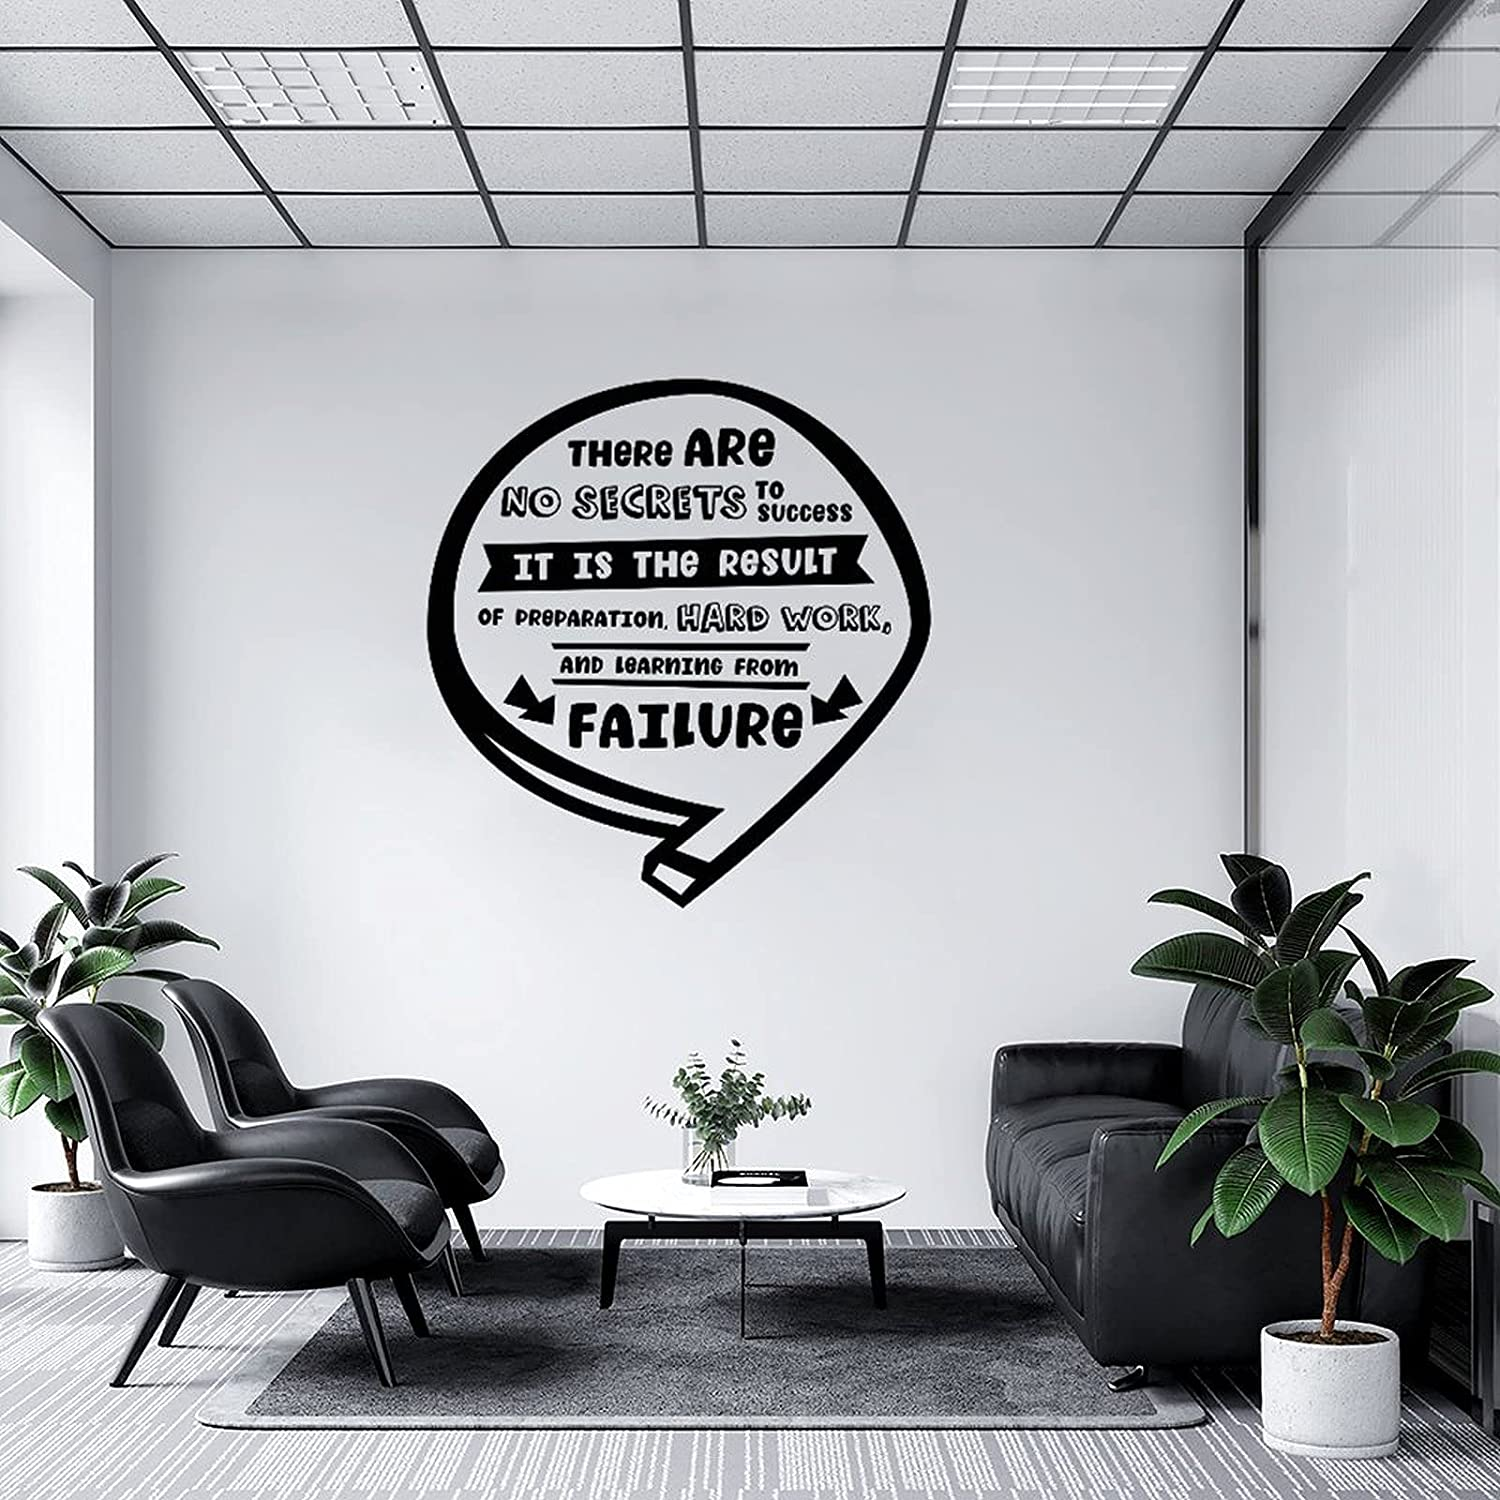 Wall Max 45% OFF Decal There are No Secrets for Perfect Bedroom to and Kids Sales results No. 1